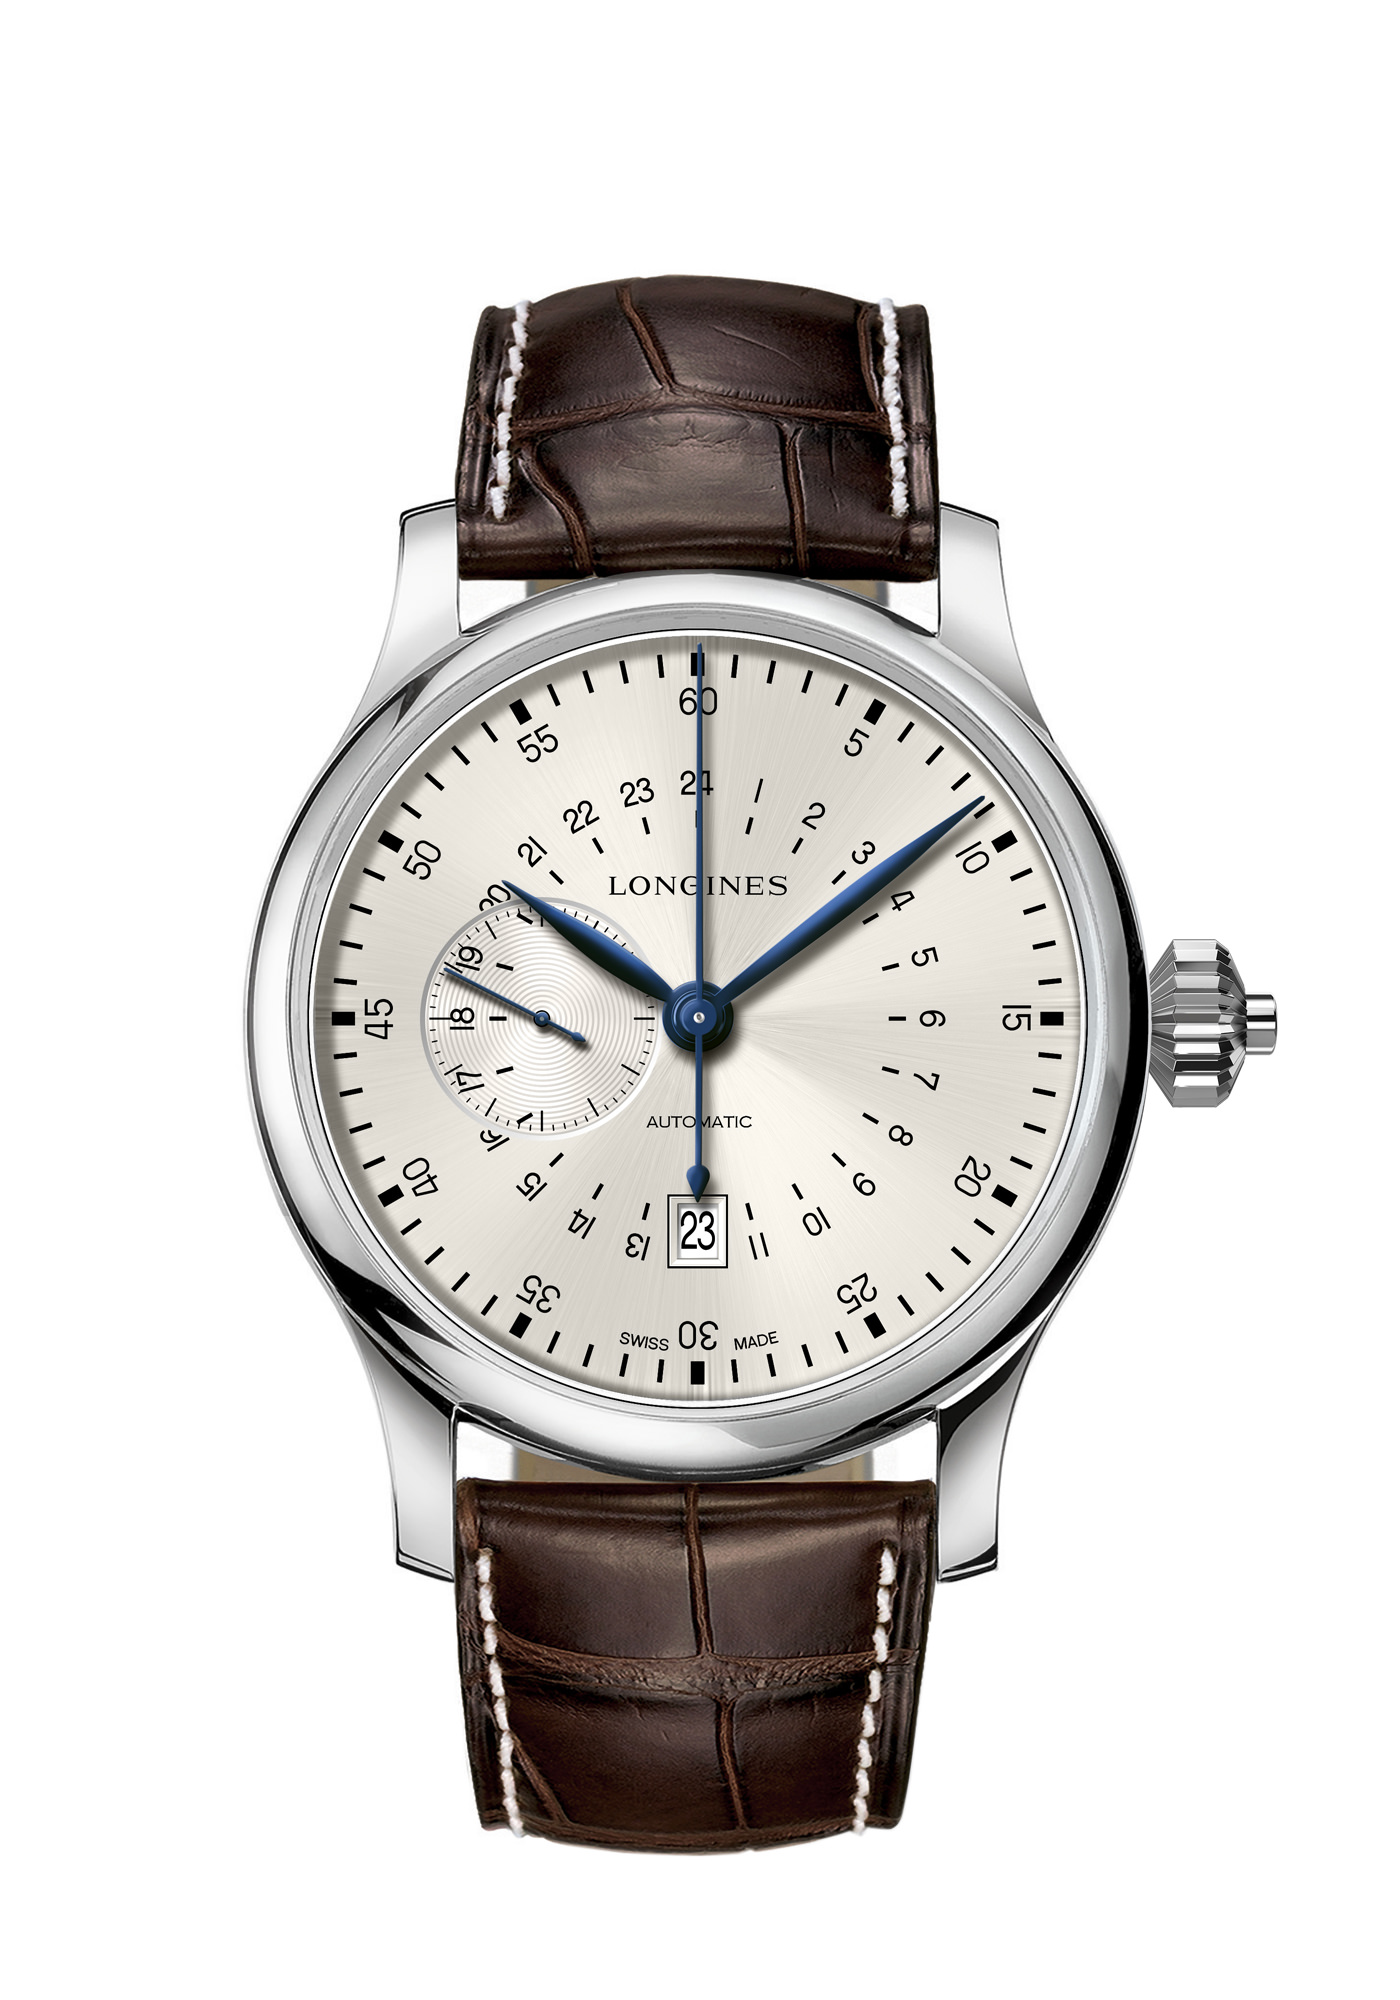 Montre Longines Collection Heritage Twenty Four Hours Single Push Piece Chronograph